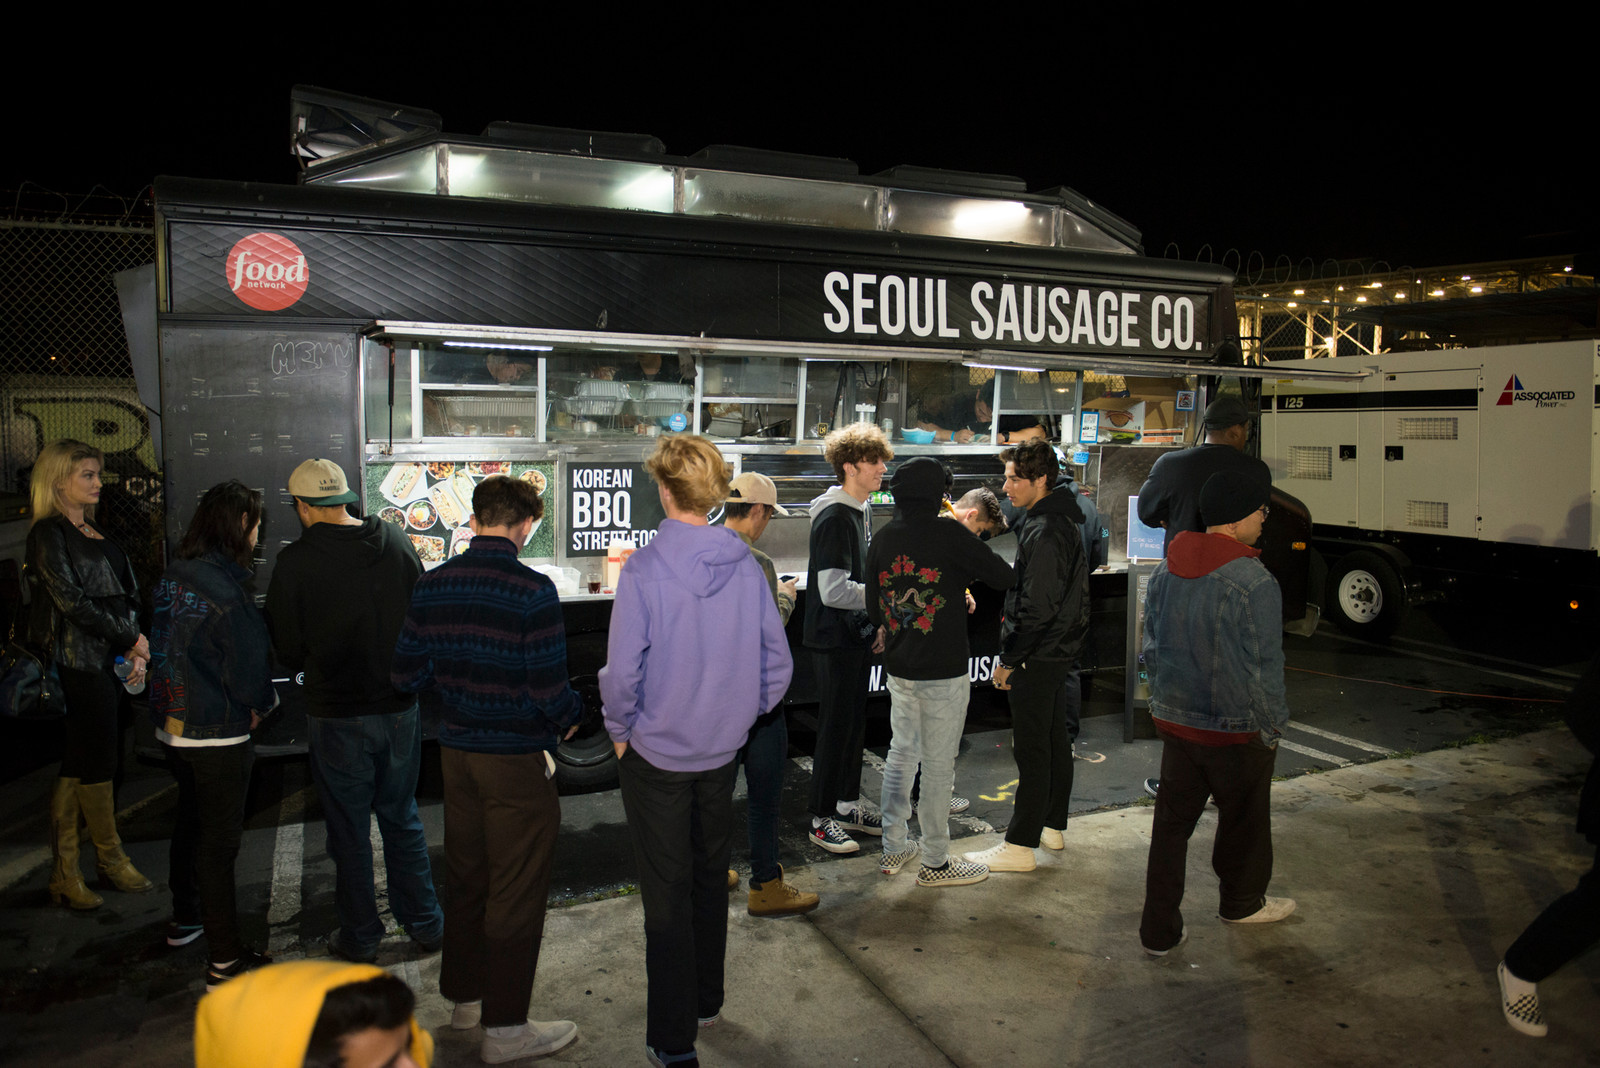 SEOUL BROTHER NO. 1: INTERVIEW WITH TED KIM